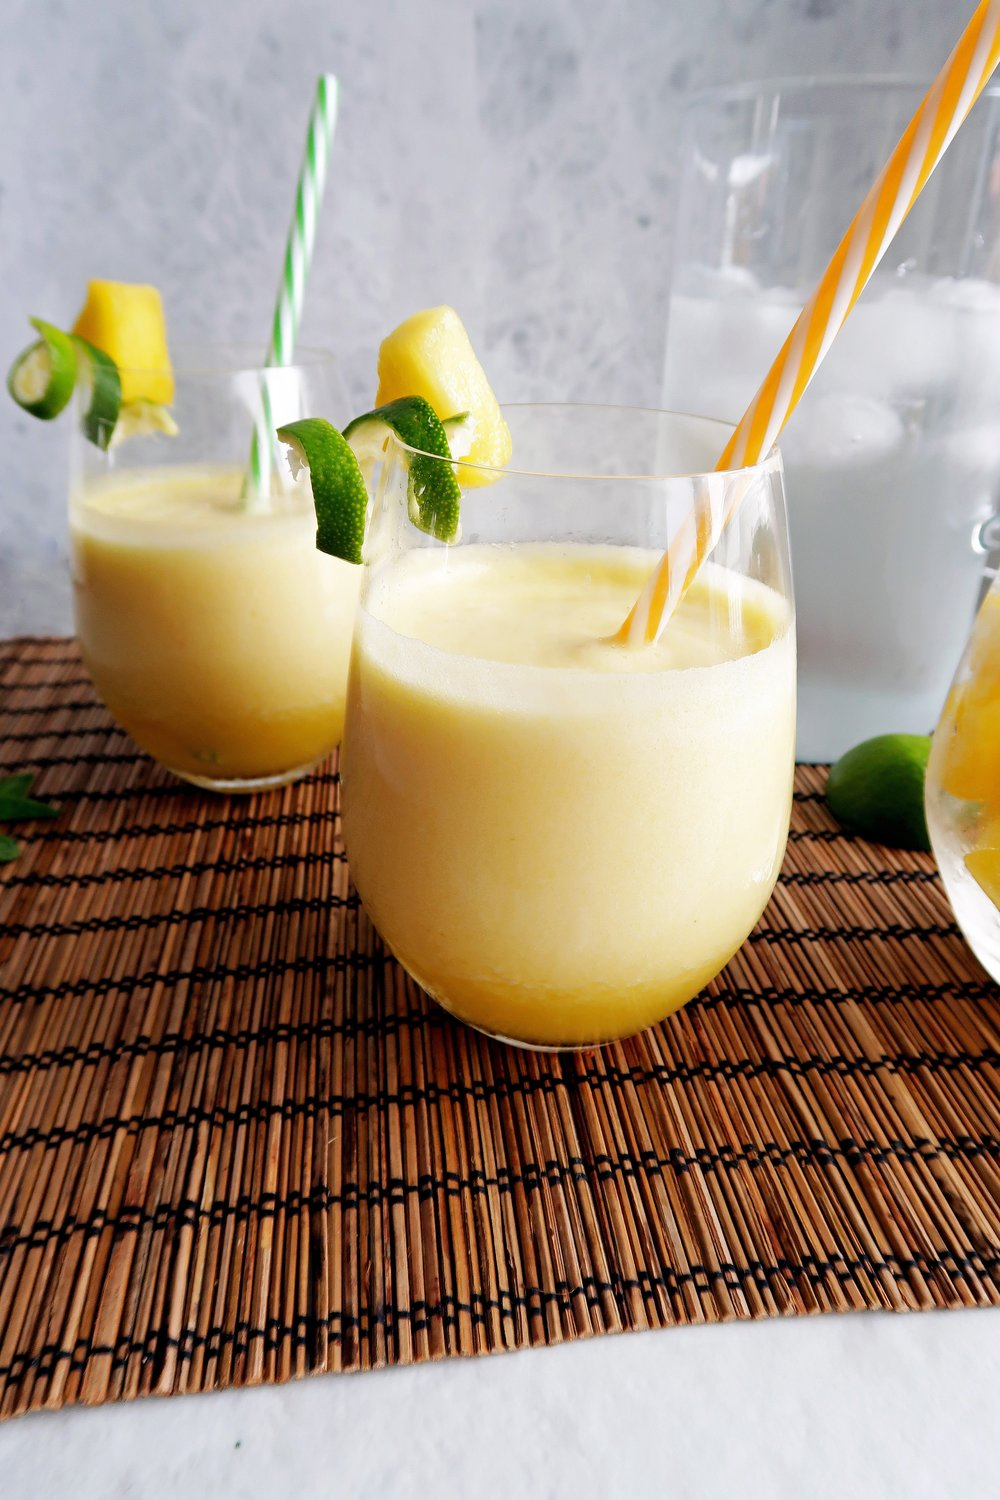 3-Ingredient Pineapple Coconut Water Slushies in two glasses with a yellow straw and pineapple and lime rind garnish.